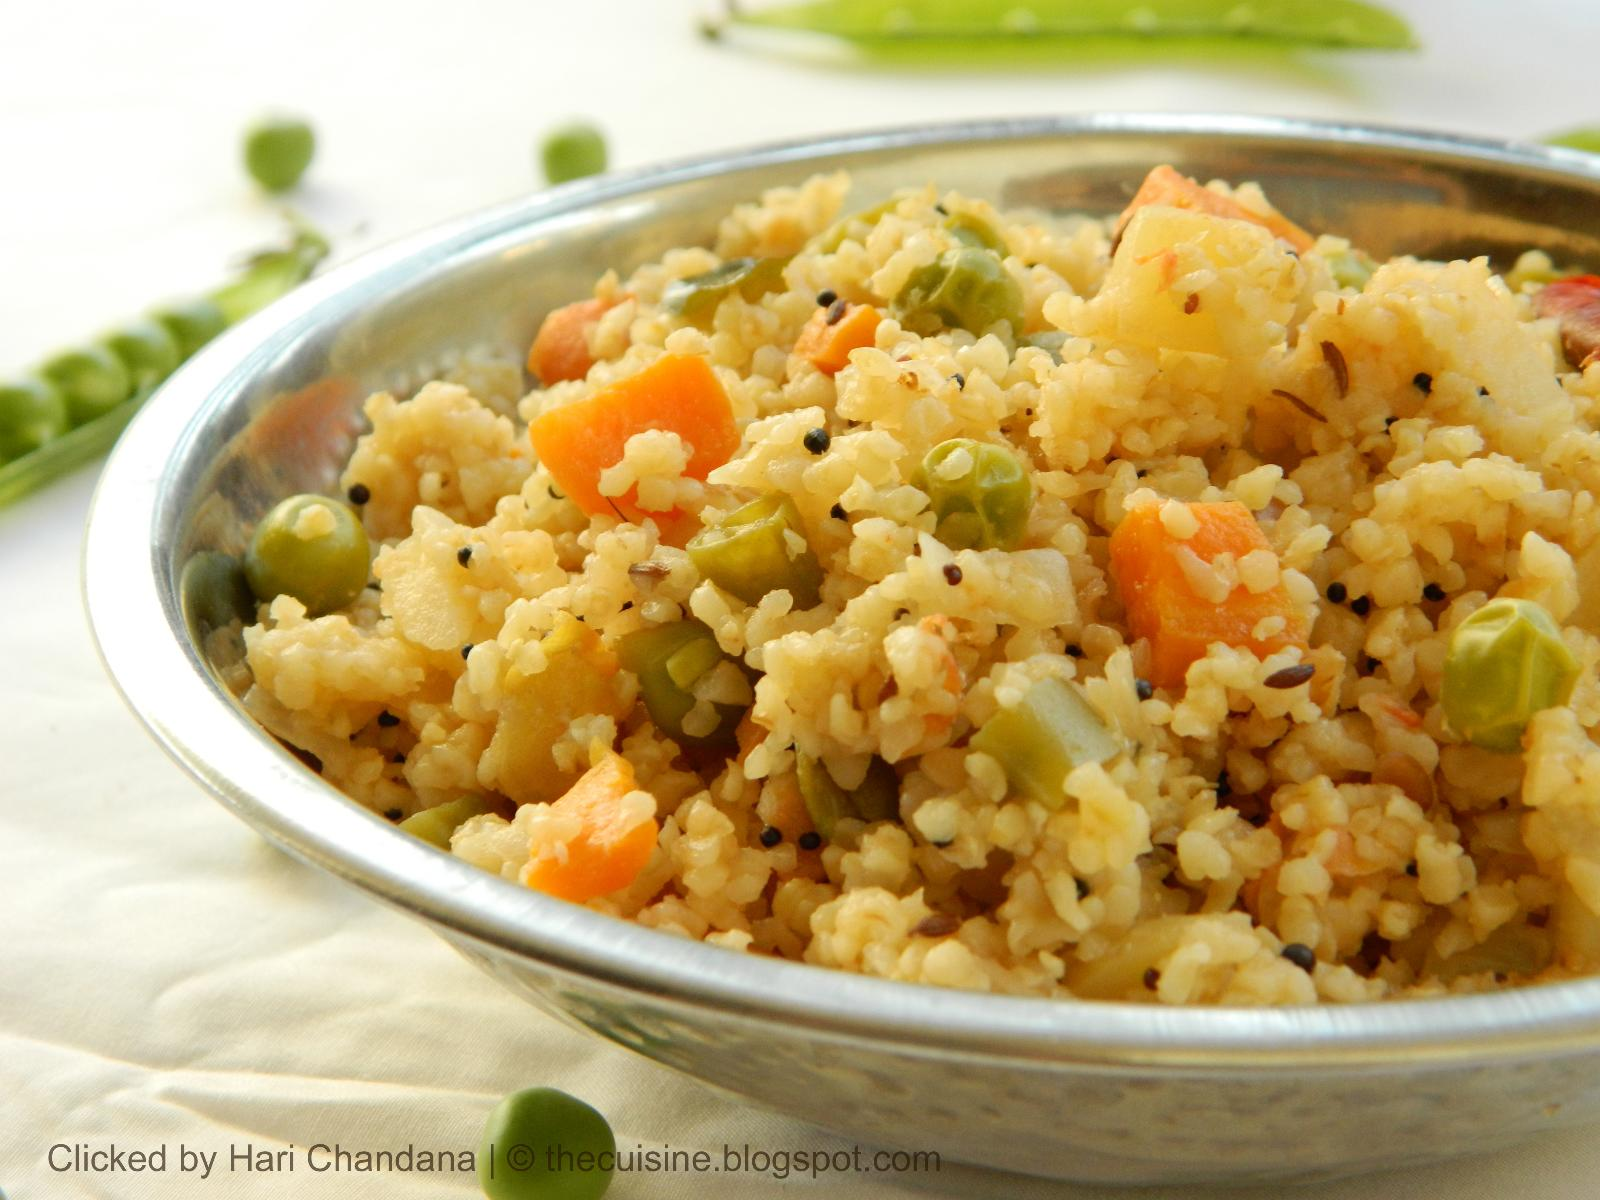 Mixed Vegetable Broken Wheat Upma Recipe - Blend with Spices